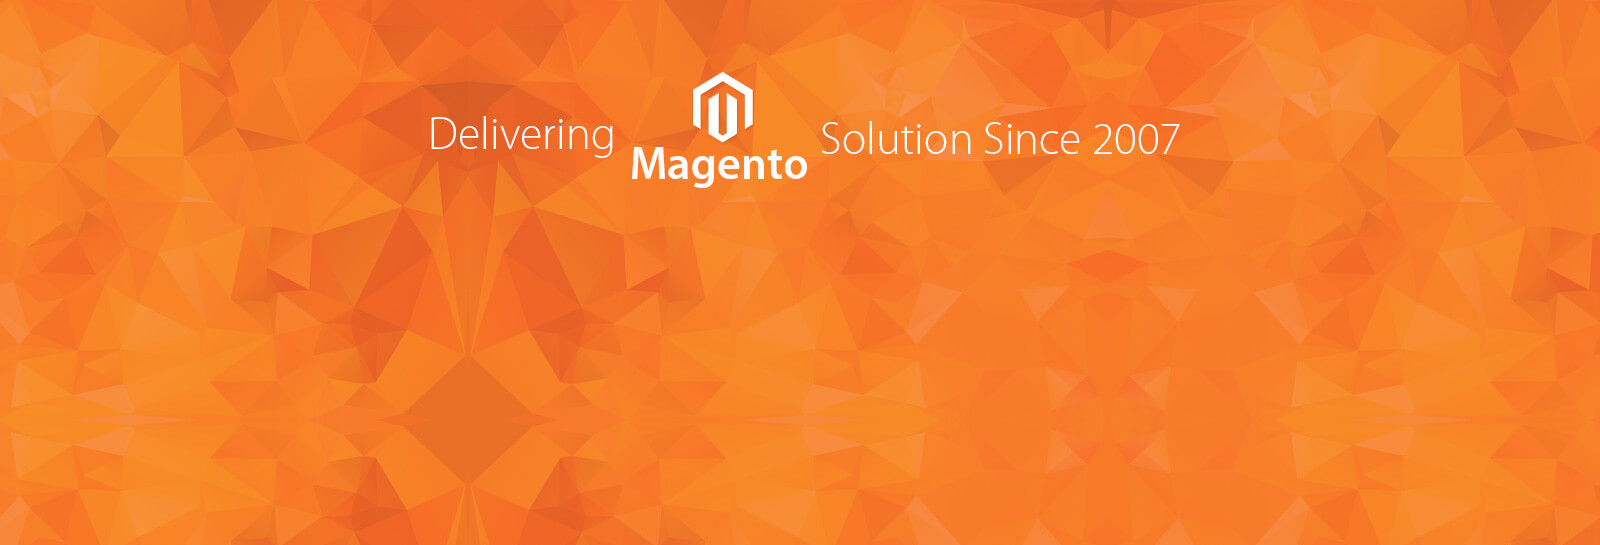 magento store development services